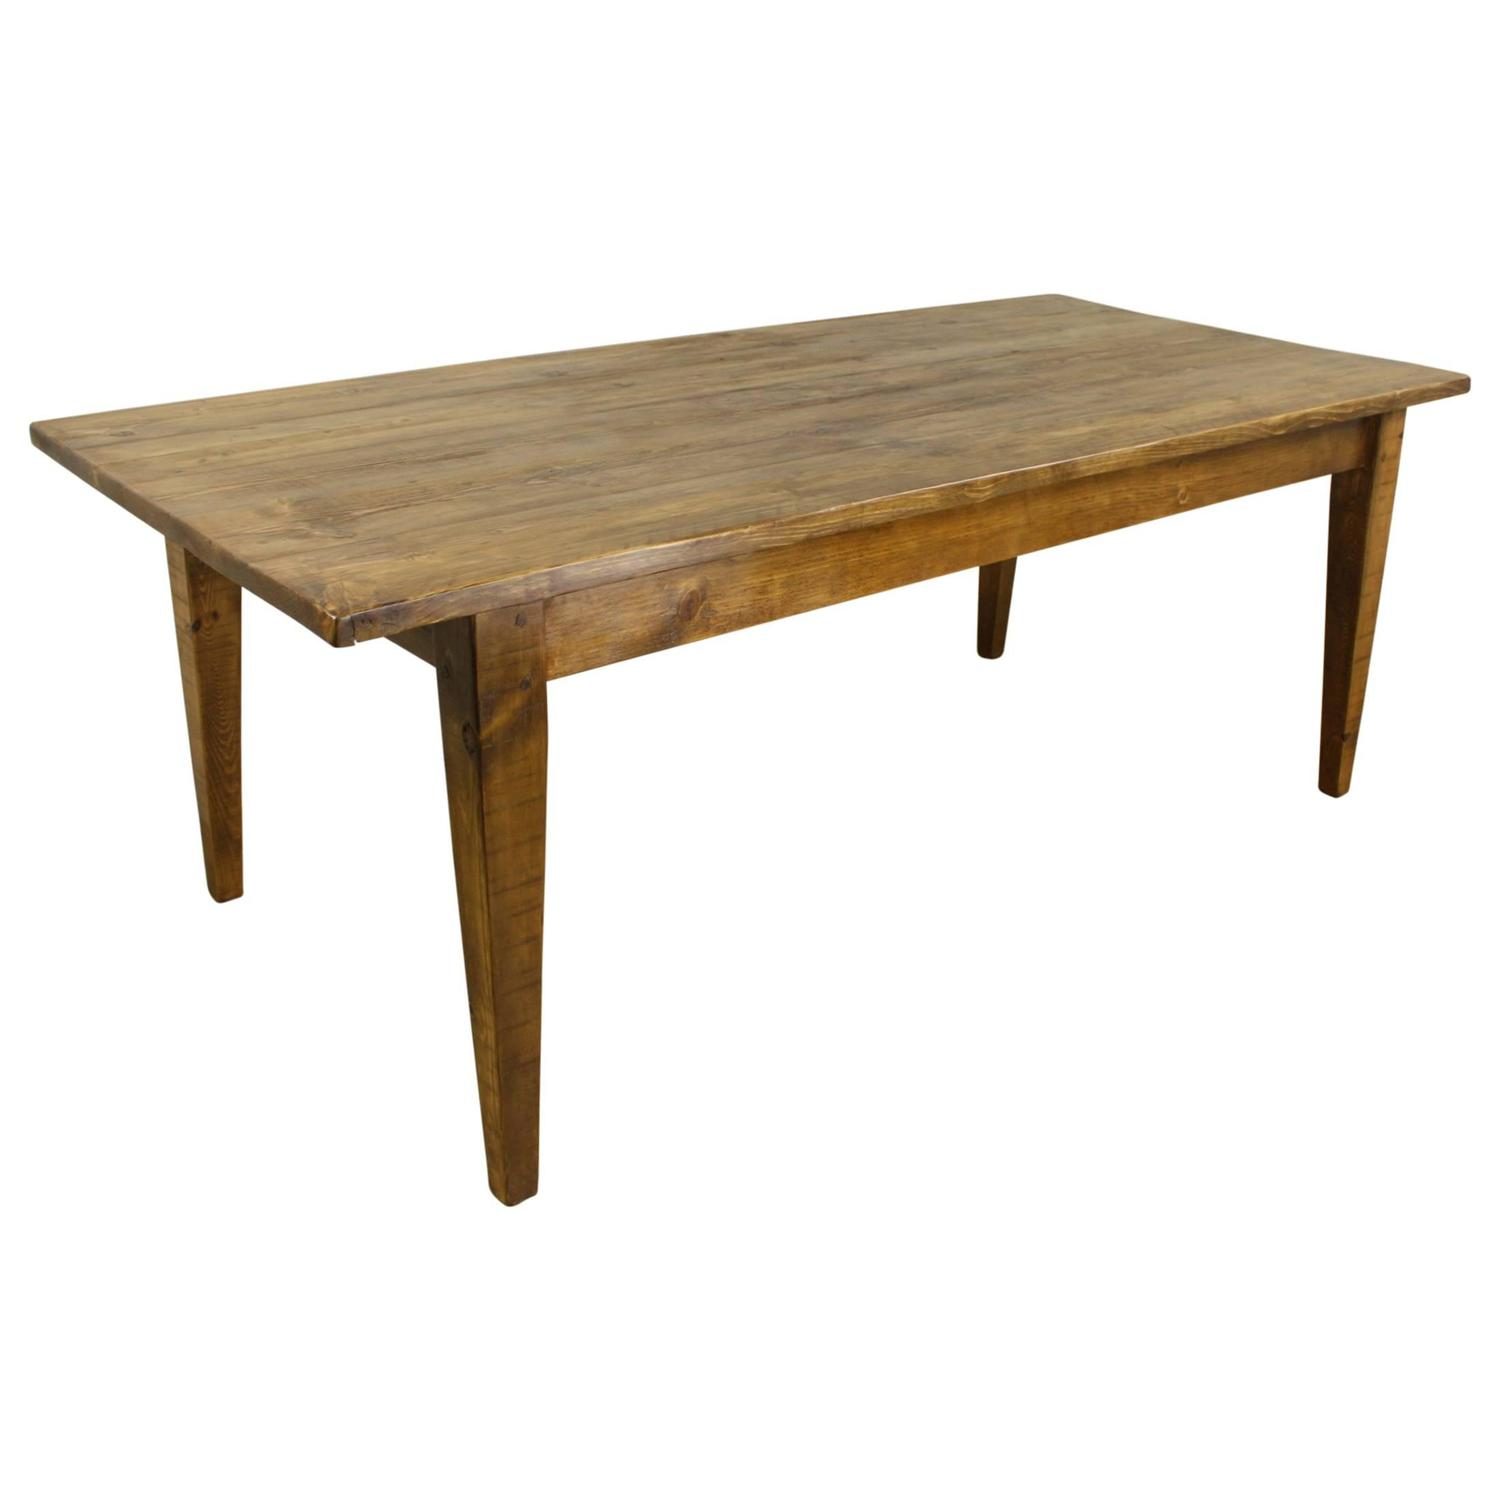 Light pine farm table at 1stdibs for Pine dining room table